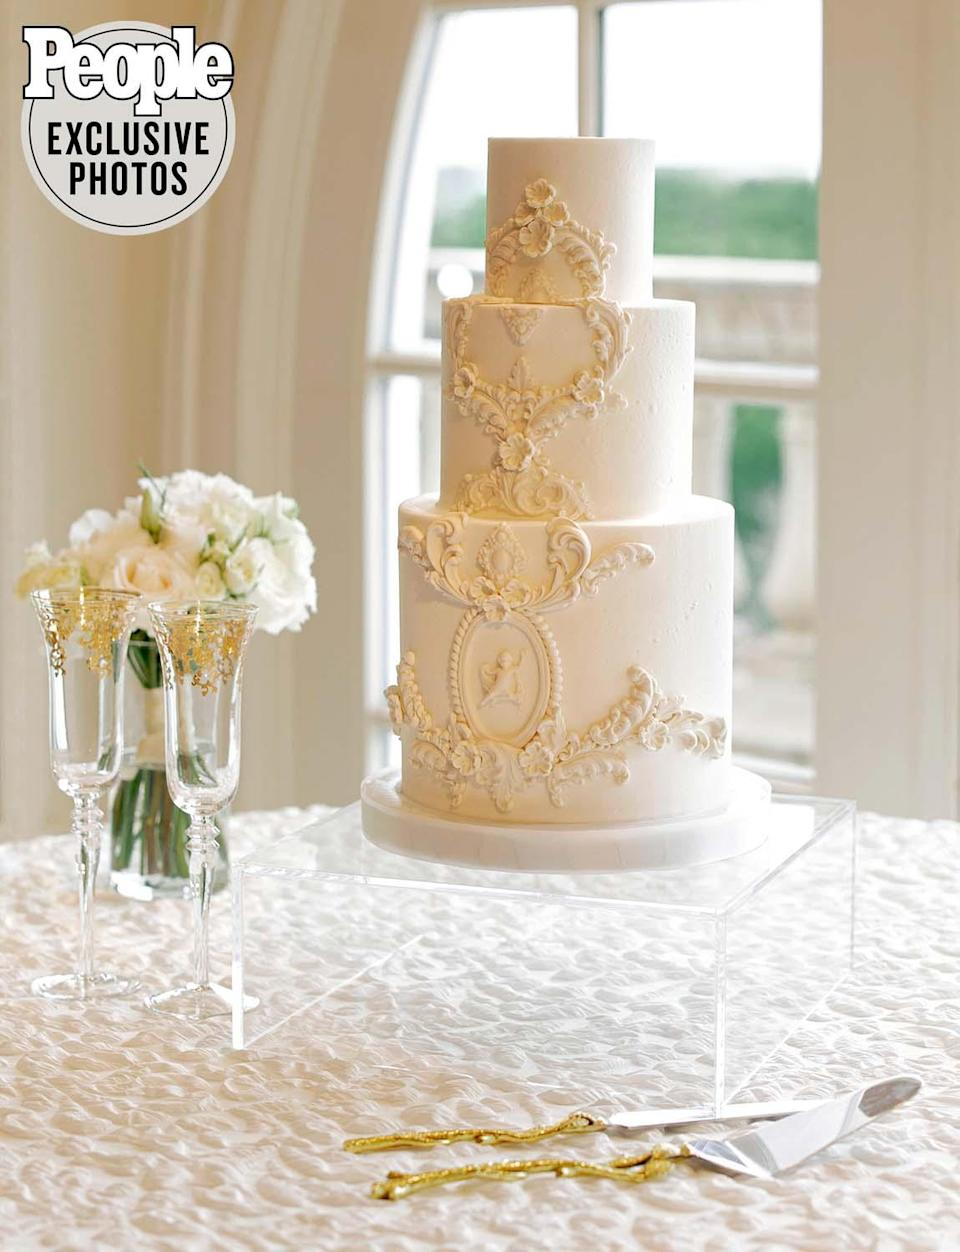 "<p>The two chose a smaller cake and enlisted <a href=""http://fancycakesbylauren.com/"" rel=""nofollow noopener"" target=""_blank"" data-ylk=""slk:Fancy Cakes by Lauren"" class=""link rapid-noclick-resp"">Fancy Cakes by Lauren</a> to create the dessert of their dreams. The custom three-tier cake also included a custom filling inspired by Gottschalk.</p> <p>Gates recalled their cake tasting session when Gottschalk took a bite of the cake and said, ""This is great, but this needs a pistachio filling."" The team took his notes and whipped up a new filling which Gates ended up loving.</p> <p>""I'm telling you, I was shocked at how great it made the cake taste,"" says Gates. </p>"